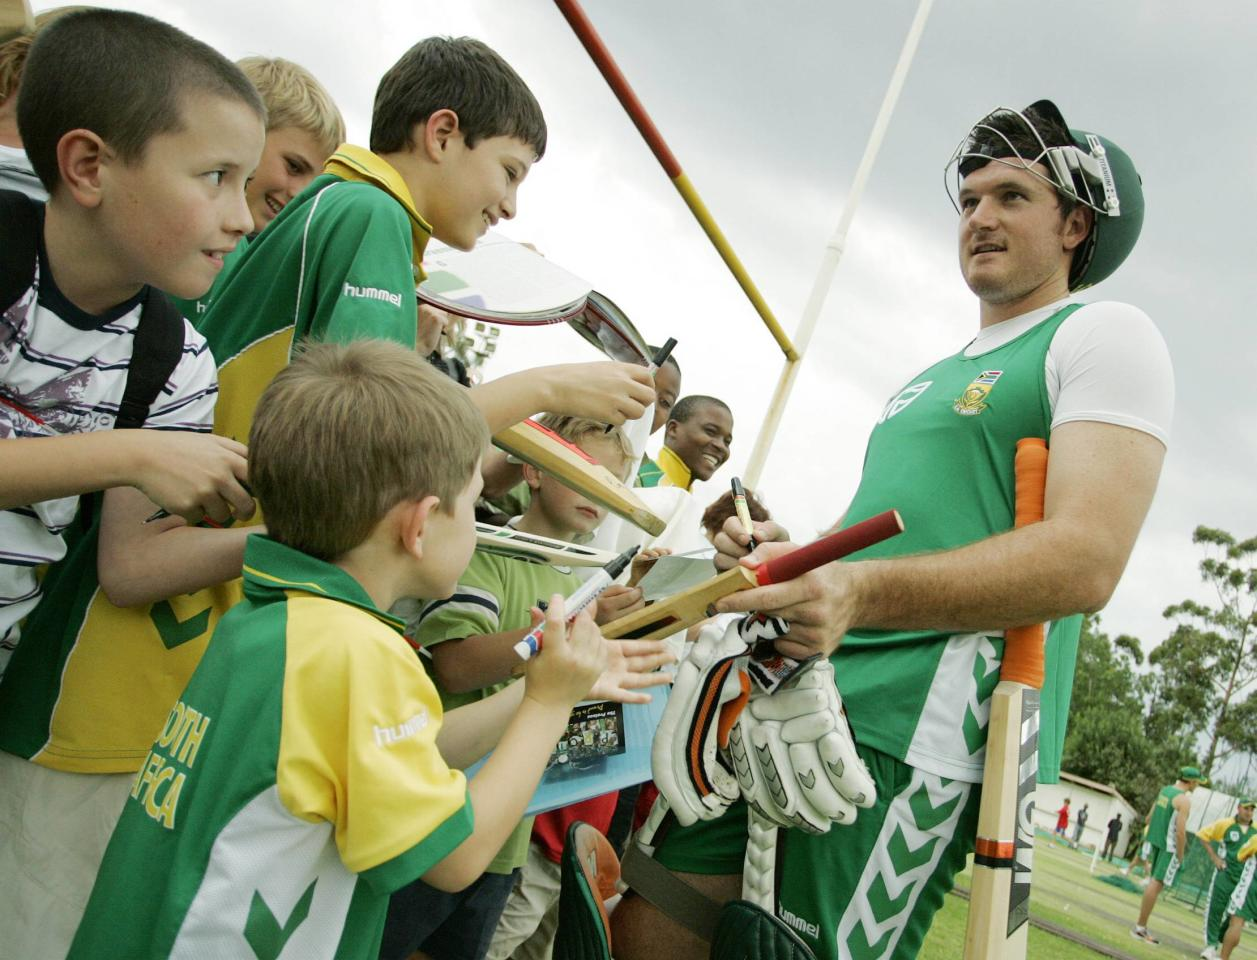 JOHANNESBURG, SOUTH AFRICA - NOVEMBER 22:  Graeme Smith signs autographs for young supporters during a practice session held at Wanderers Cricket Ground on November 22, 2007  in Johannesburg, South Africa. (Photo by Gallo Images/Getty Images)